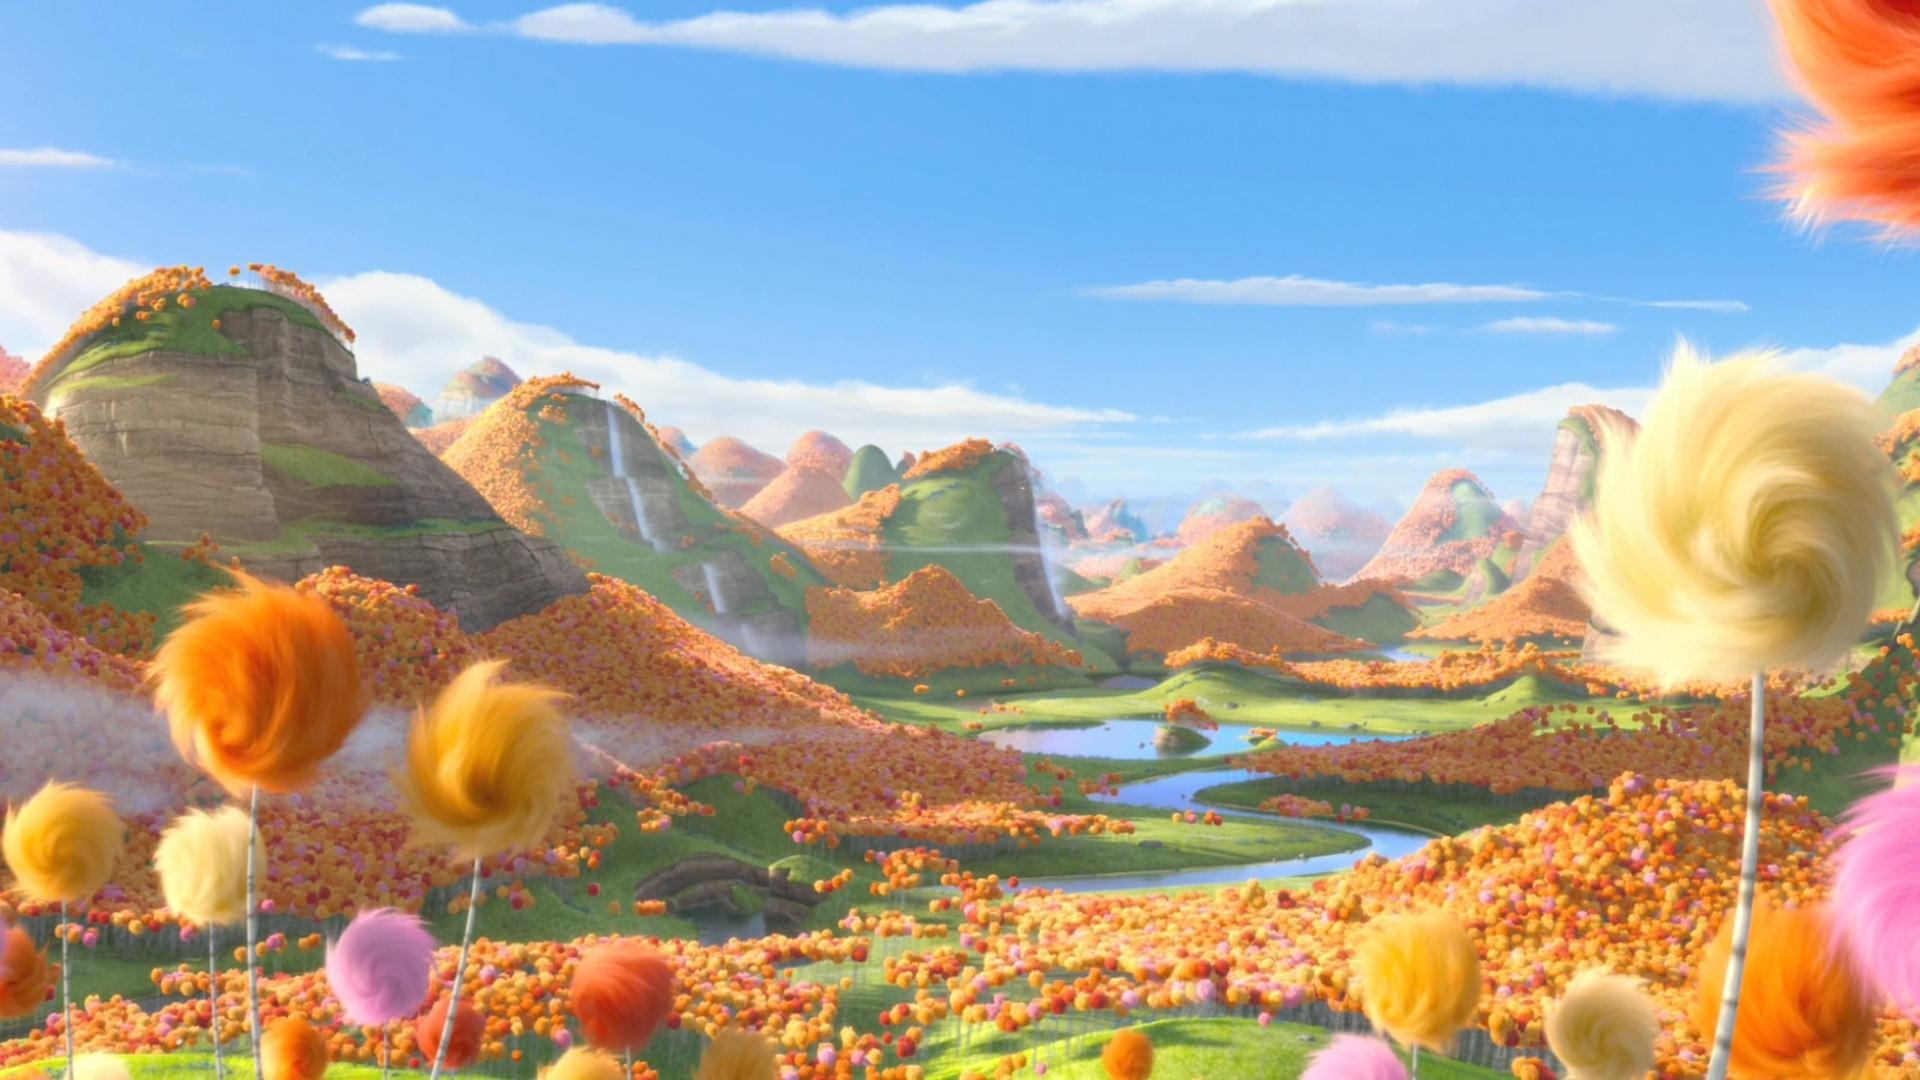 Dr.-Seuss-The-Lorax-HD-Wallpapers-4.jpg (1920×1080)